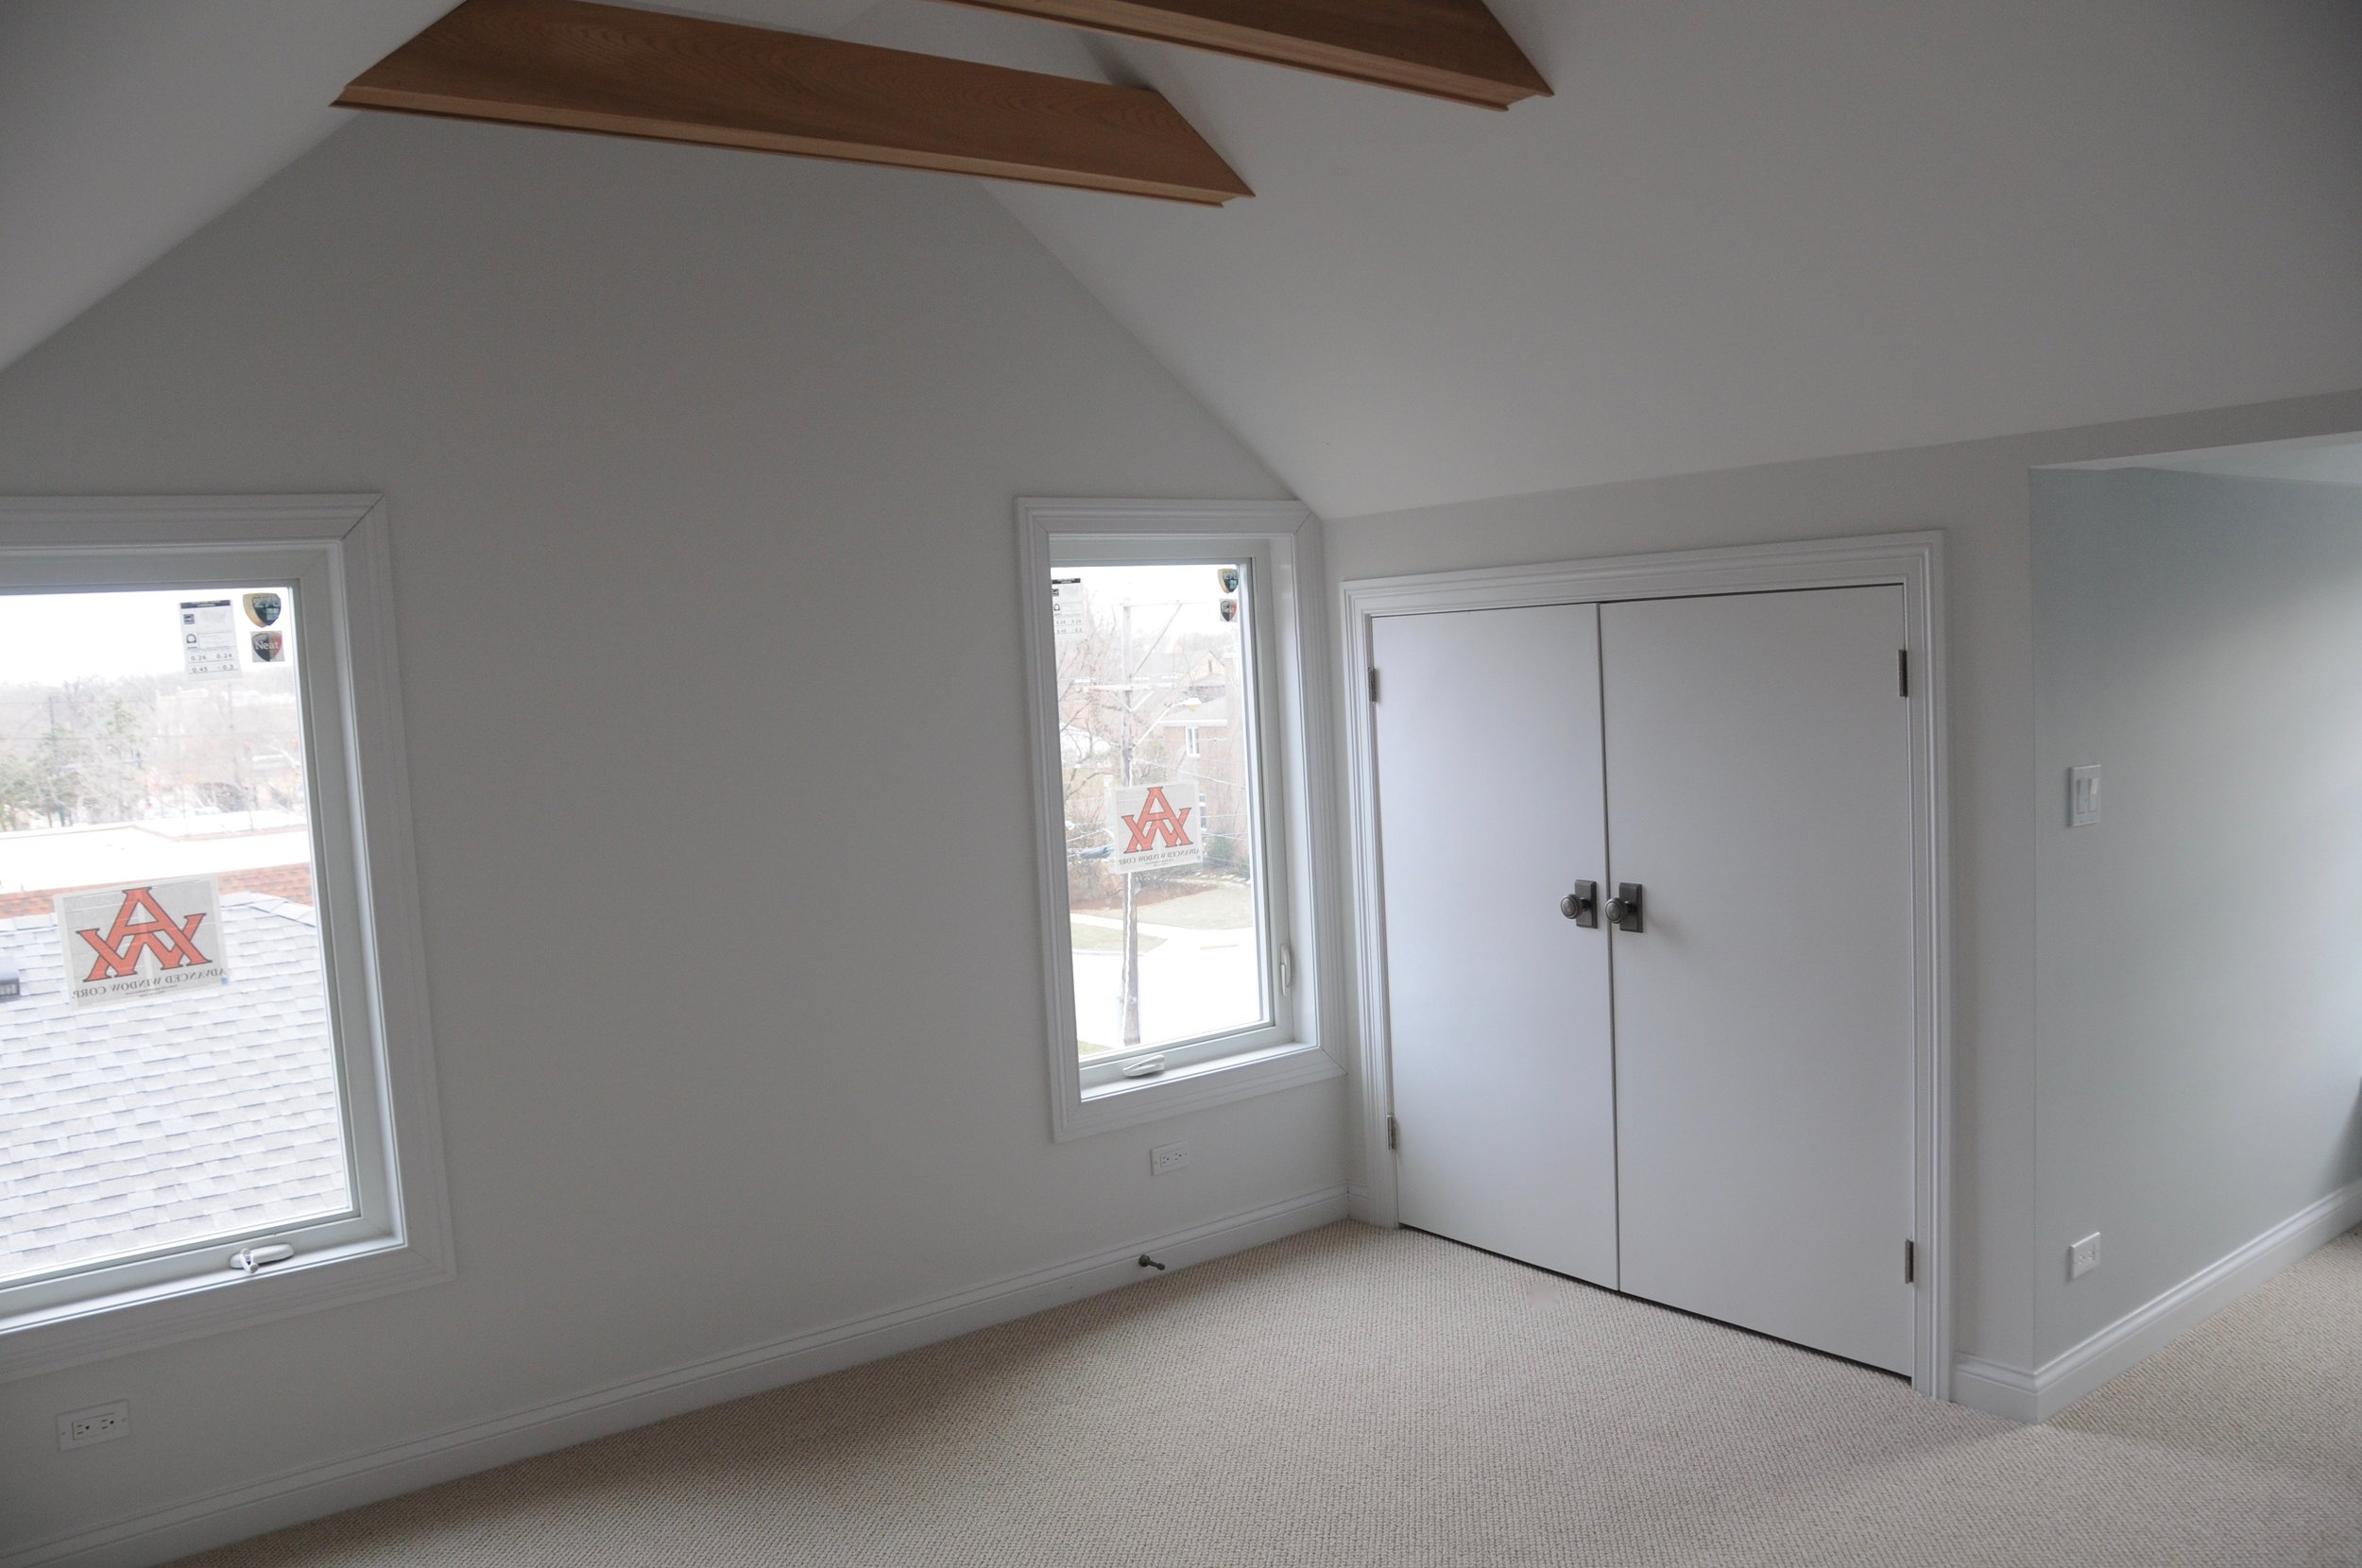 The adjacent bedroom with closet and new windows. This room is flooded with light for most of the day and has its own reading bench in the dormer.